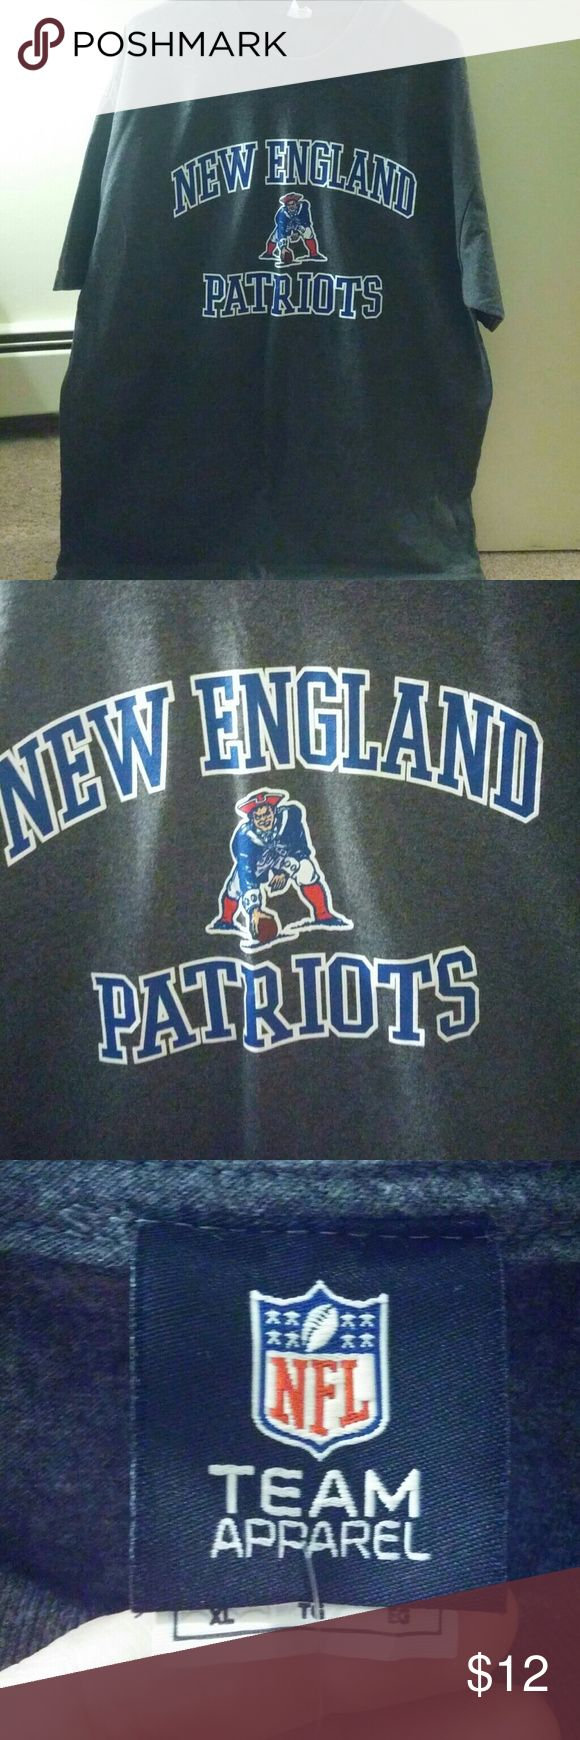 NWOT Patriots Tee Dark grey, unisex, New England Patriots t-shirt. Short sleeve. Purchased at the Patriots Pro Shop, brand new! Makes a great gift! Super Bowl champs 2017 :) Never worn! NFL Team Apparel Tops Tees - Short Sleeve